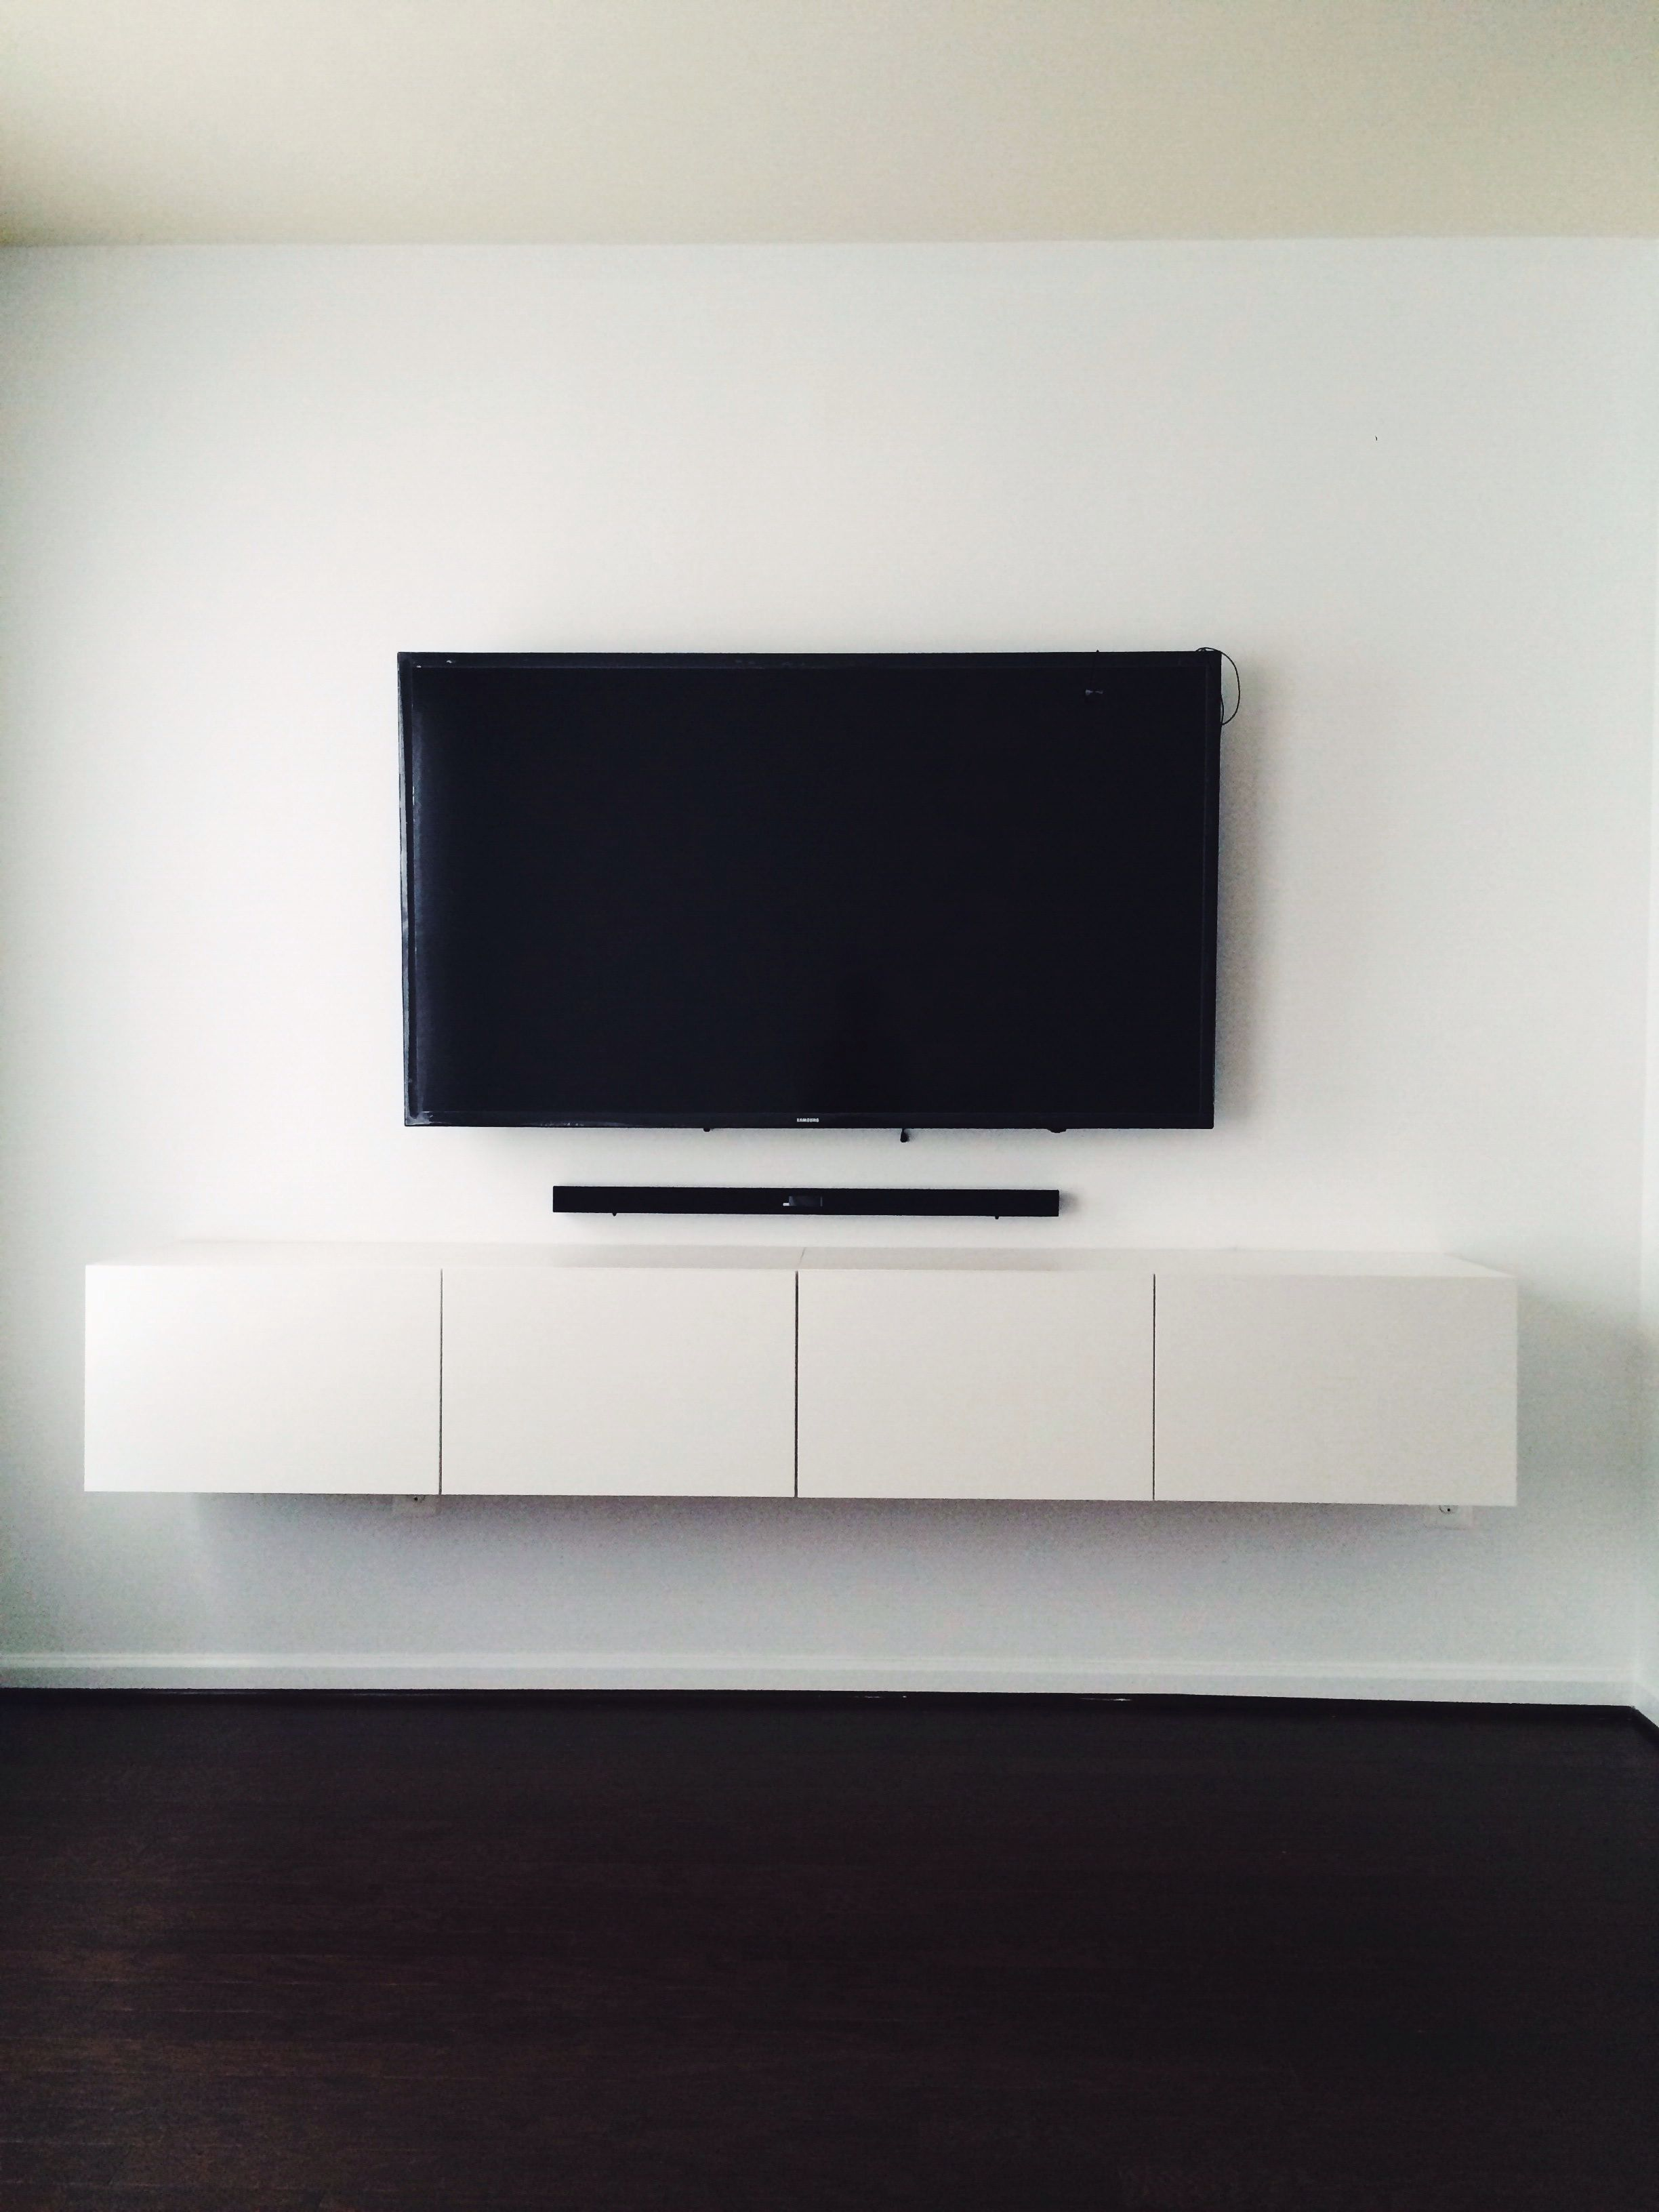 Floating Wall Mounted Tv Unit Ikea BestÅ Media Console Mounted Tv With Hidden Wires